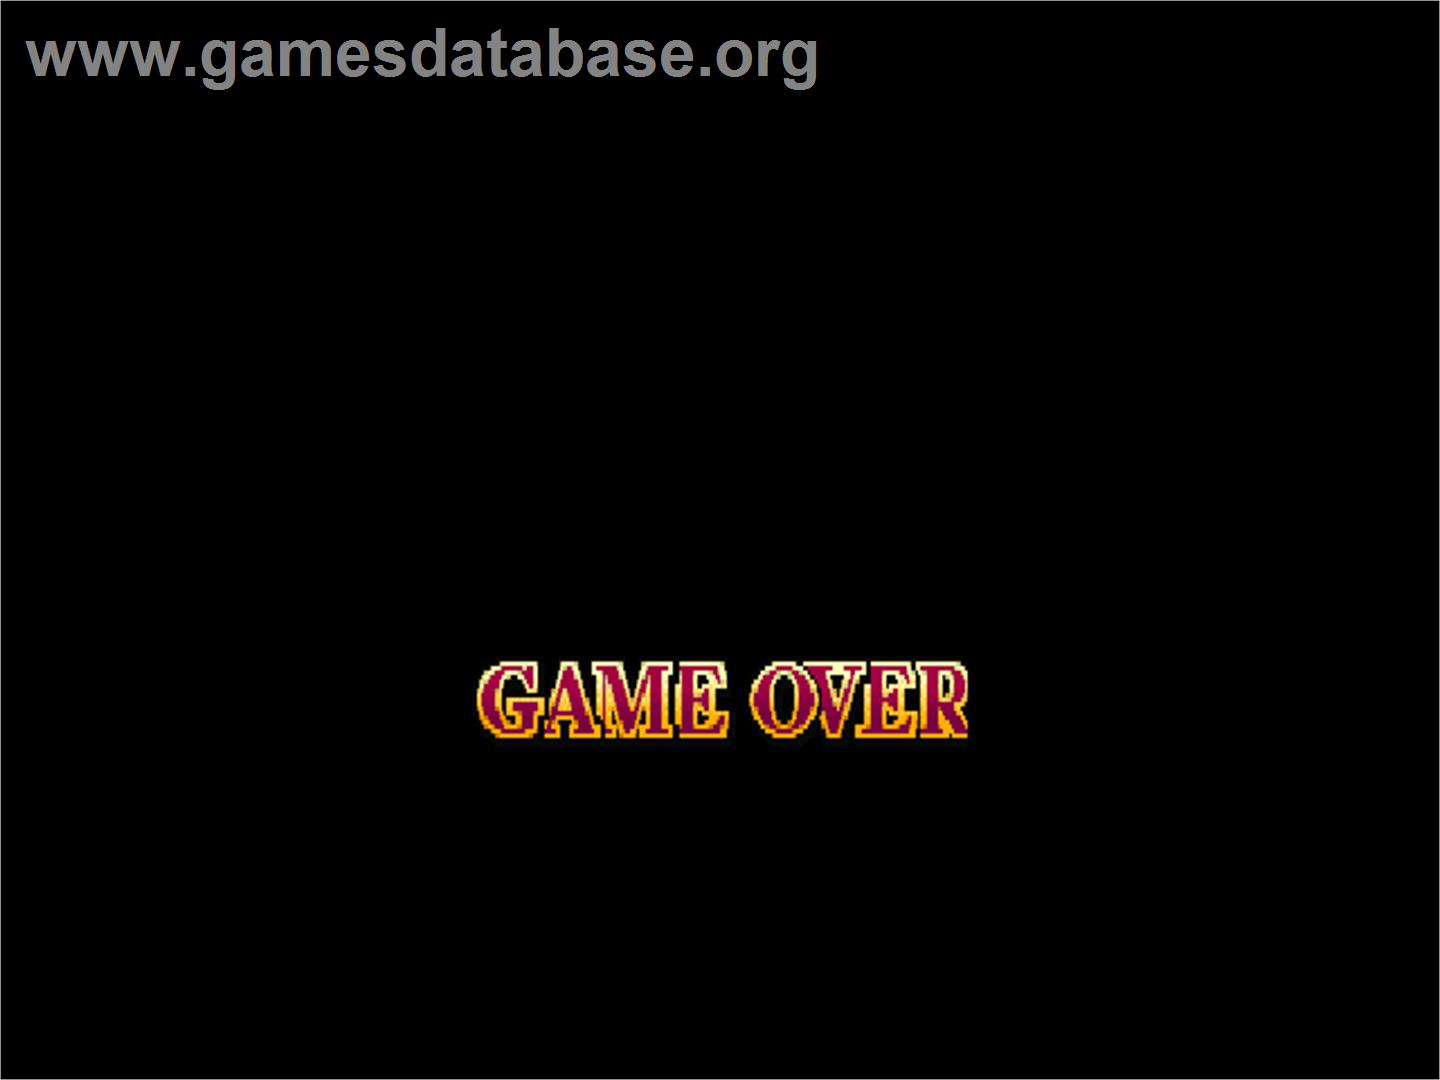 Street Fighter EX 2 - Arcade - Artwork - Game Over Screen